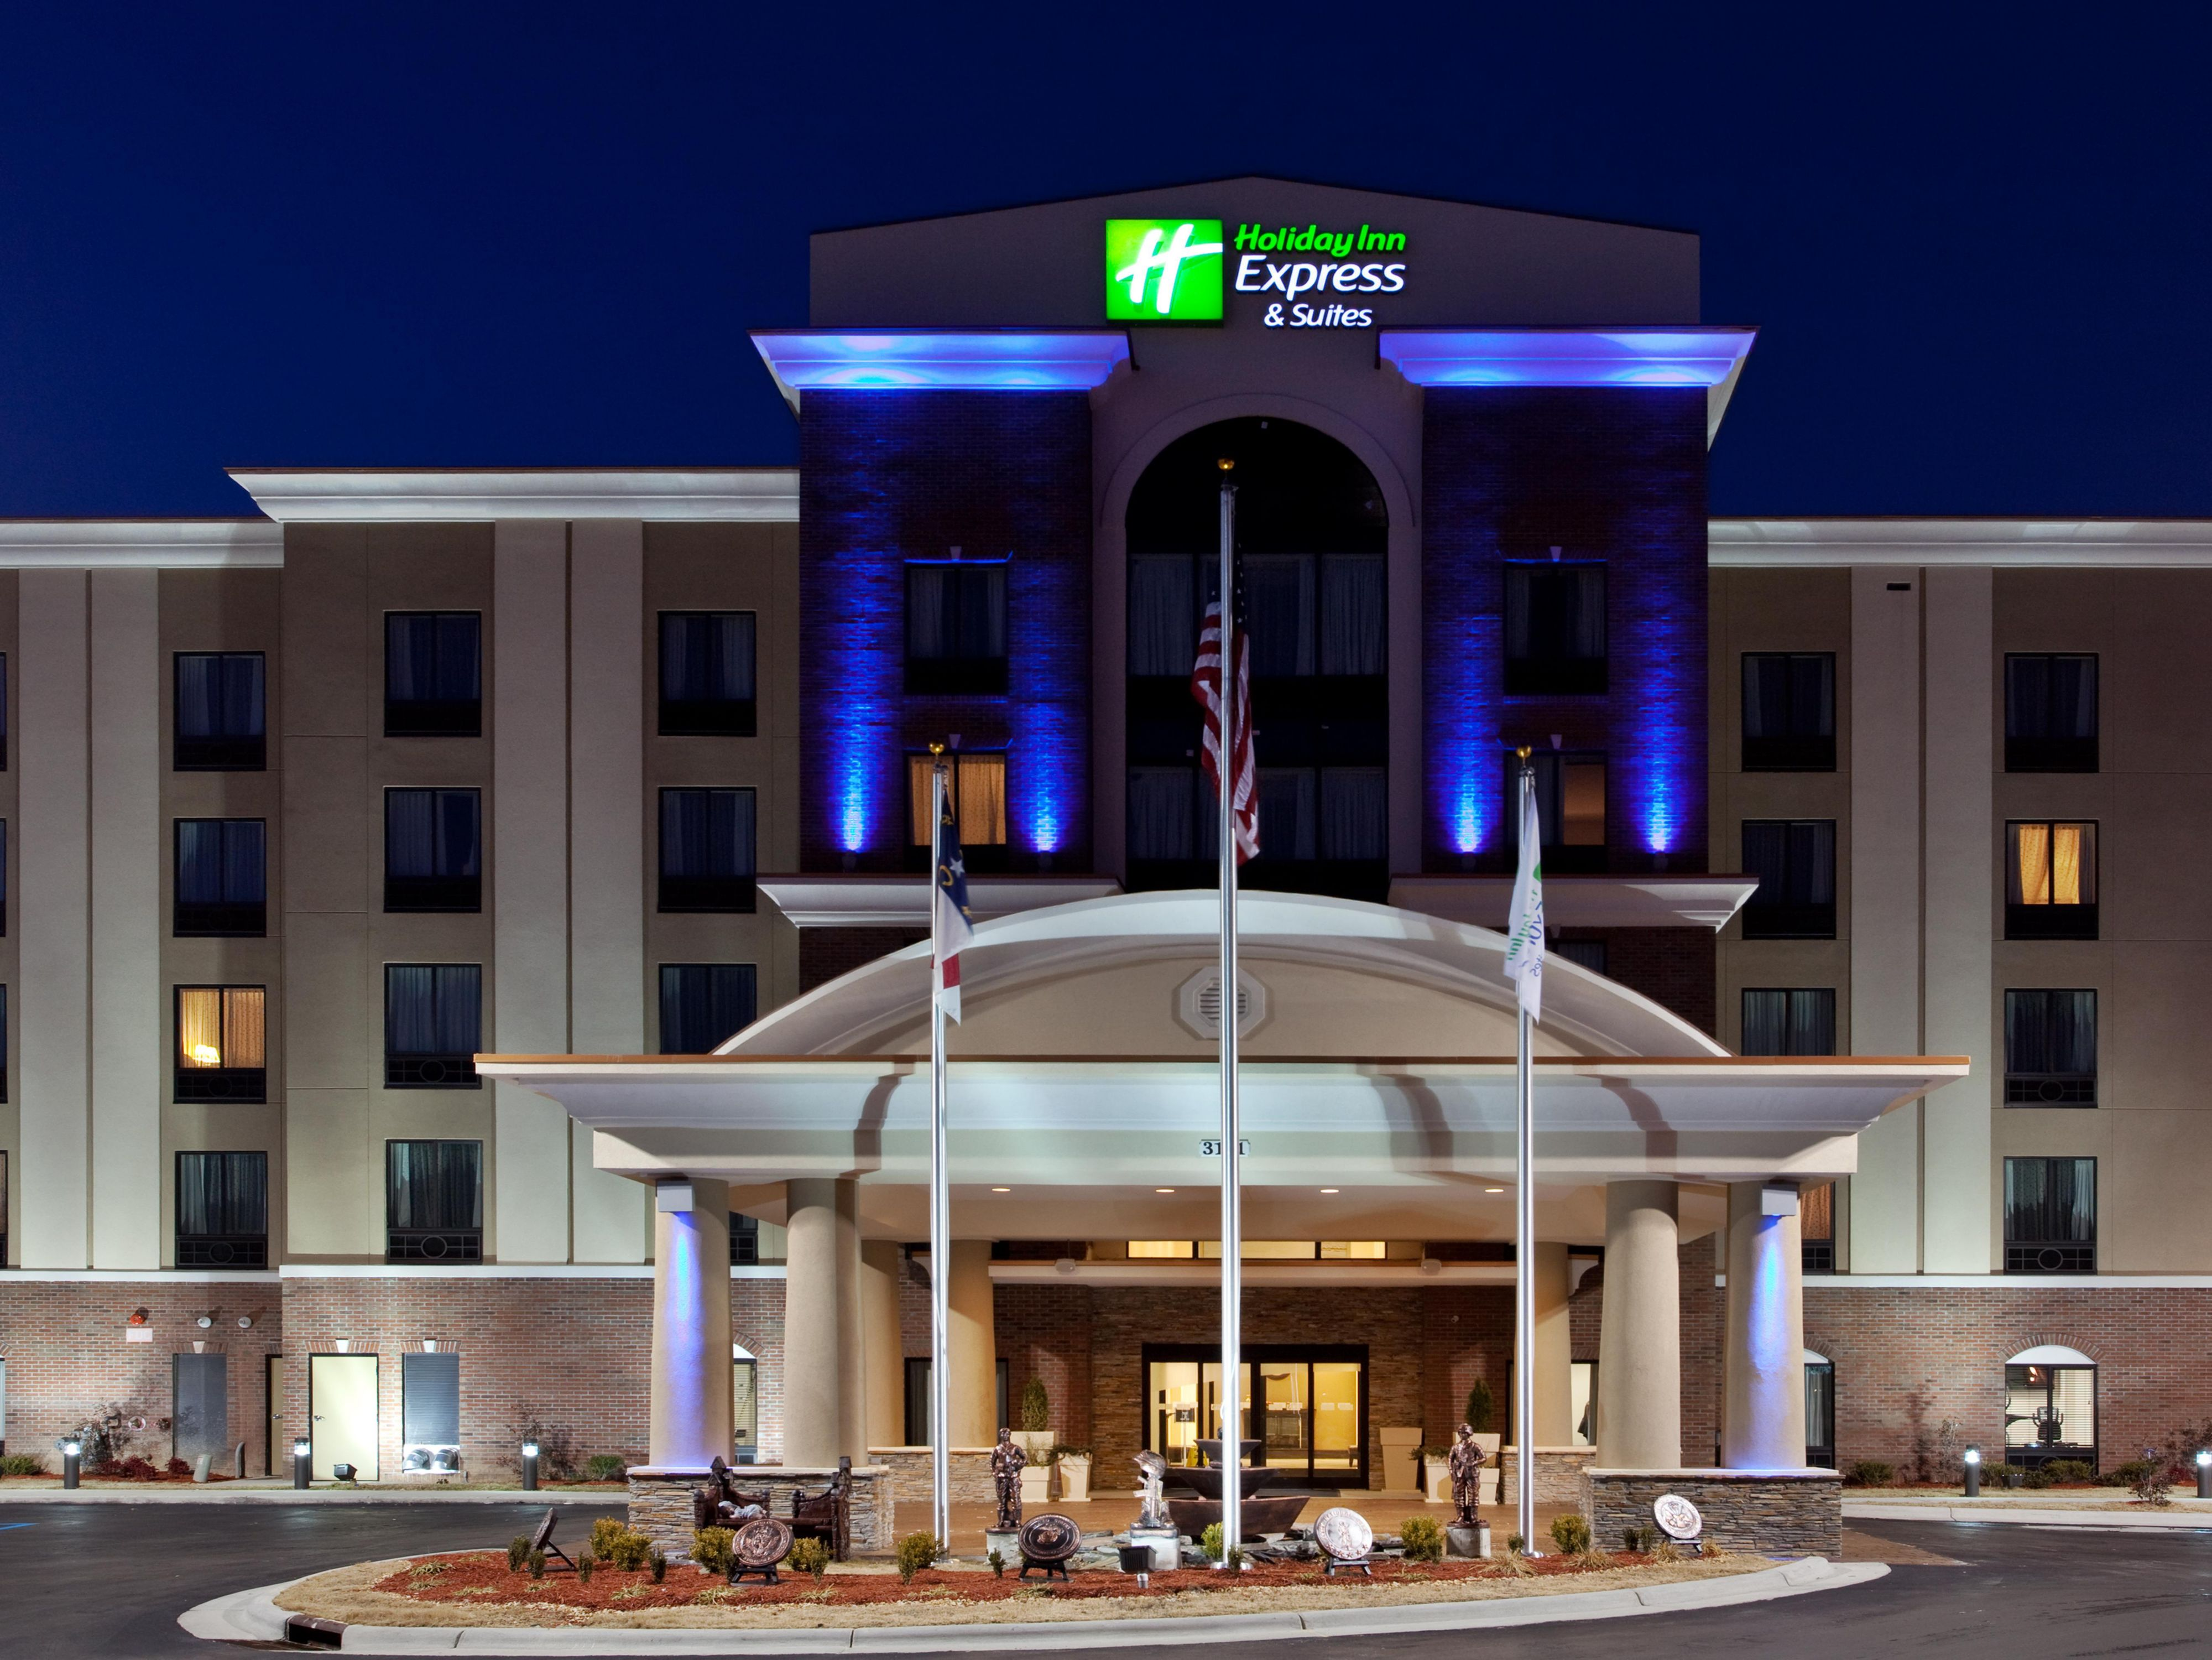 Holiday Inn Express Fayetteville Affordable Hotels By IHG